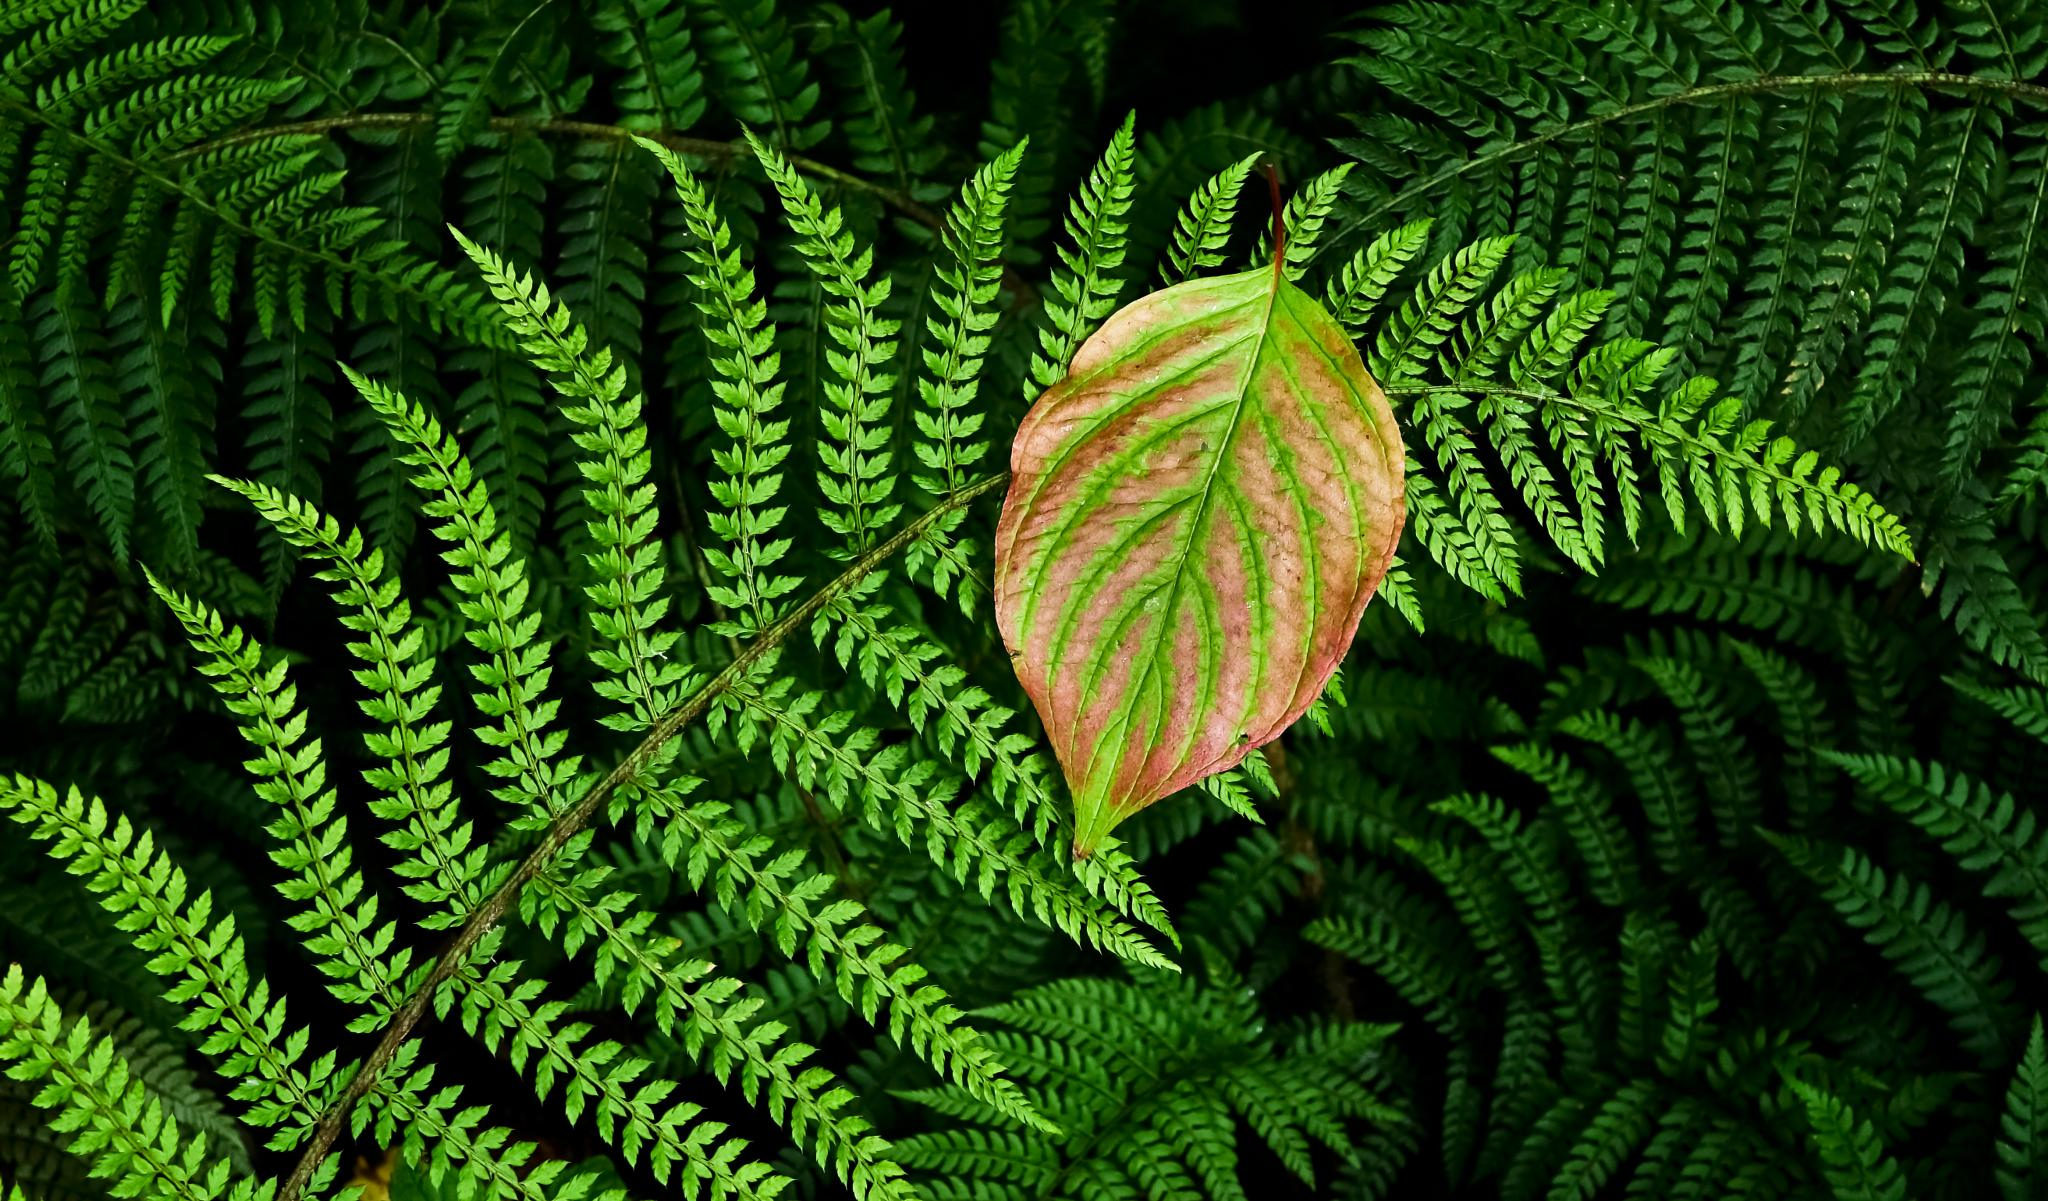 Fern/leaf by Peter Edwardo Vicente.